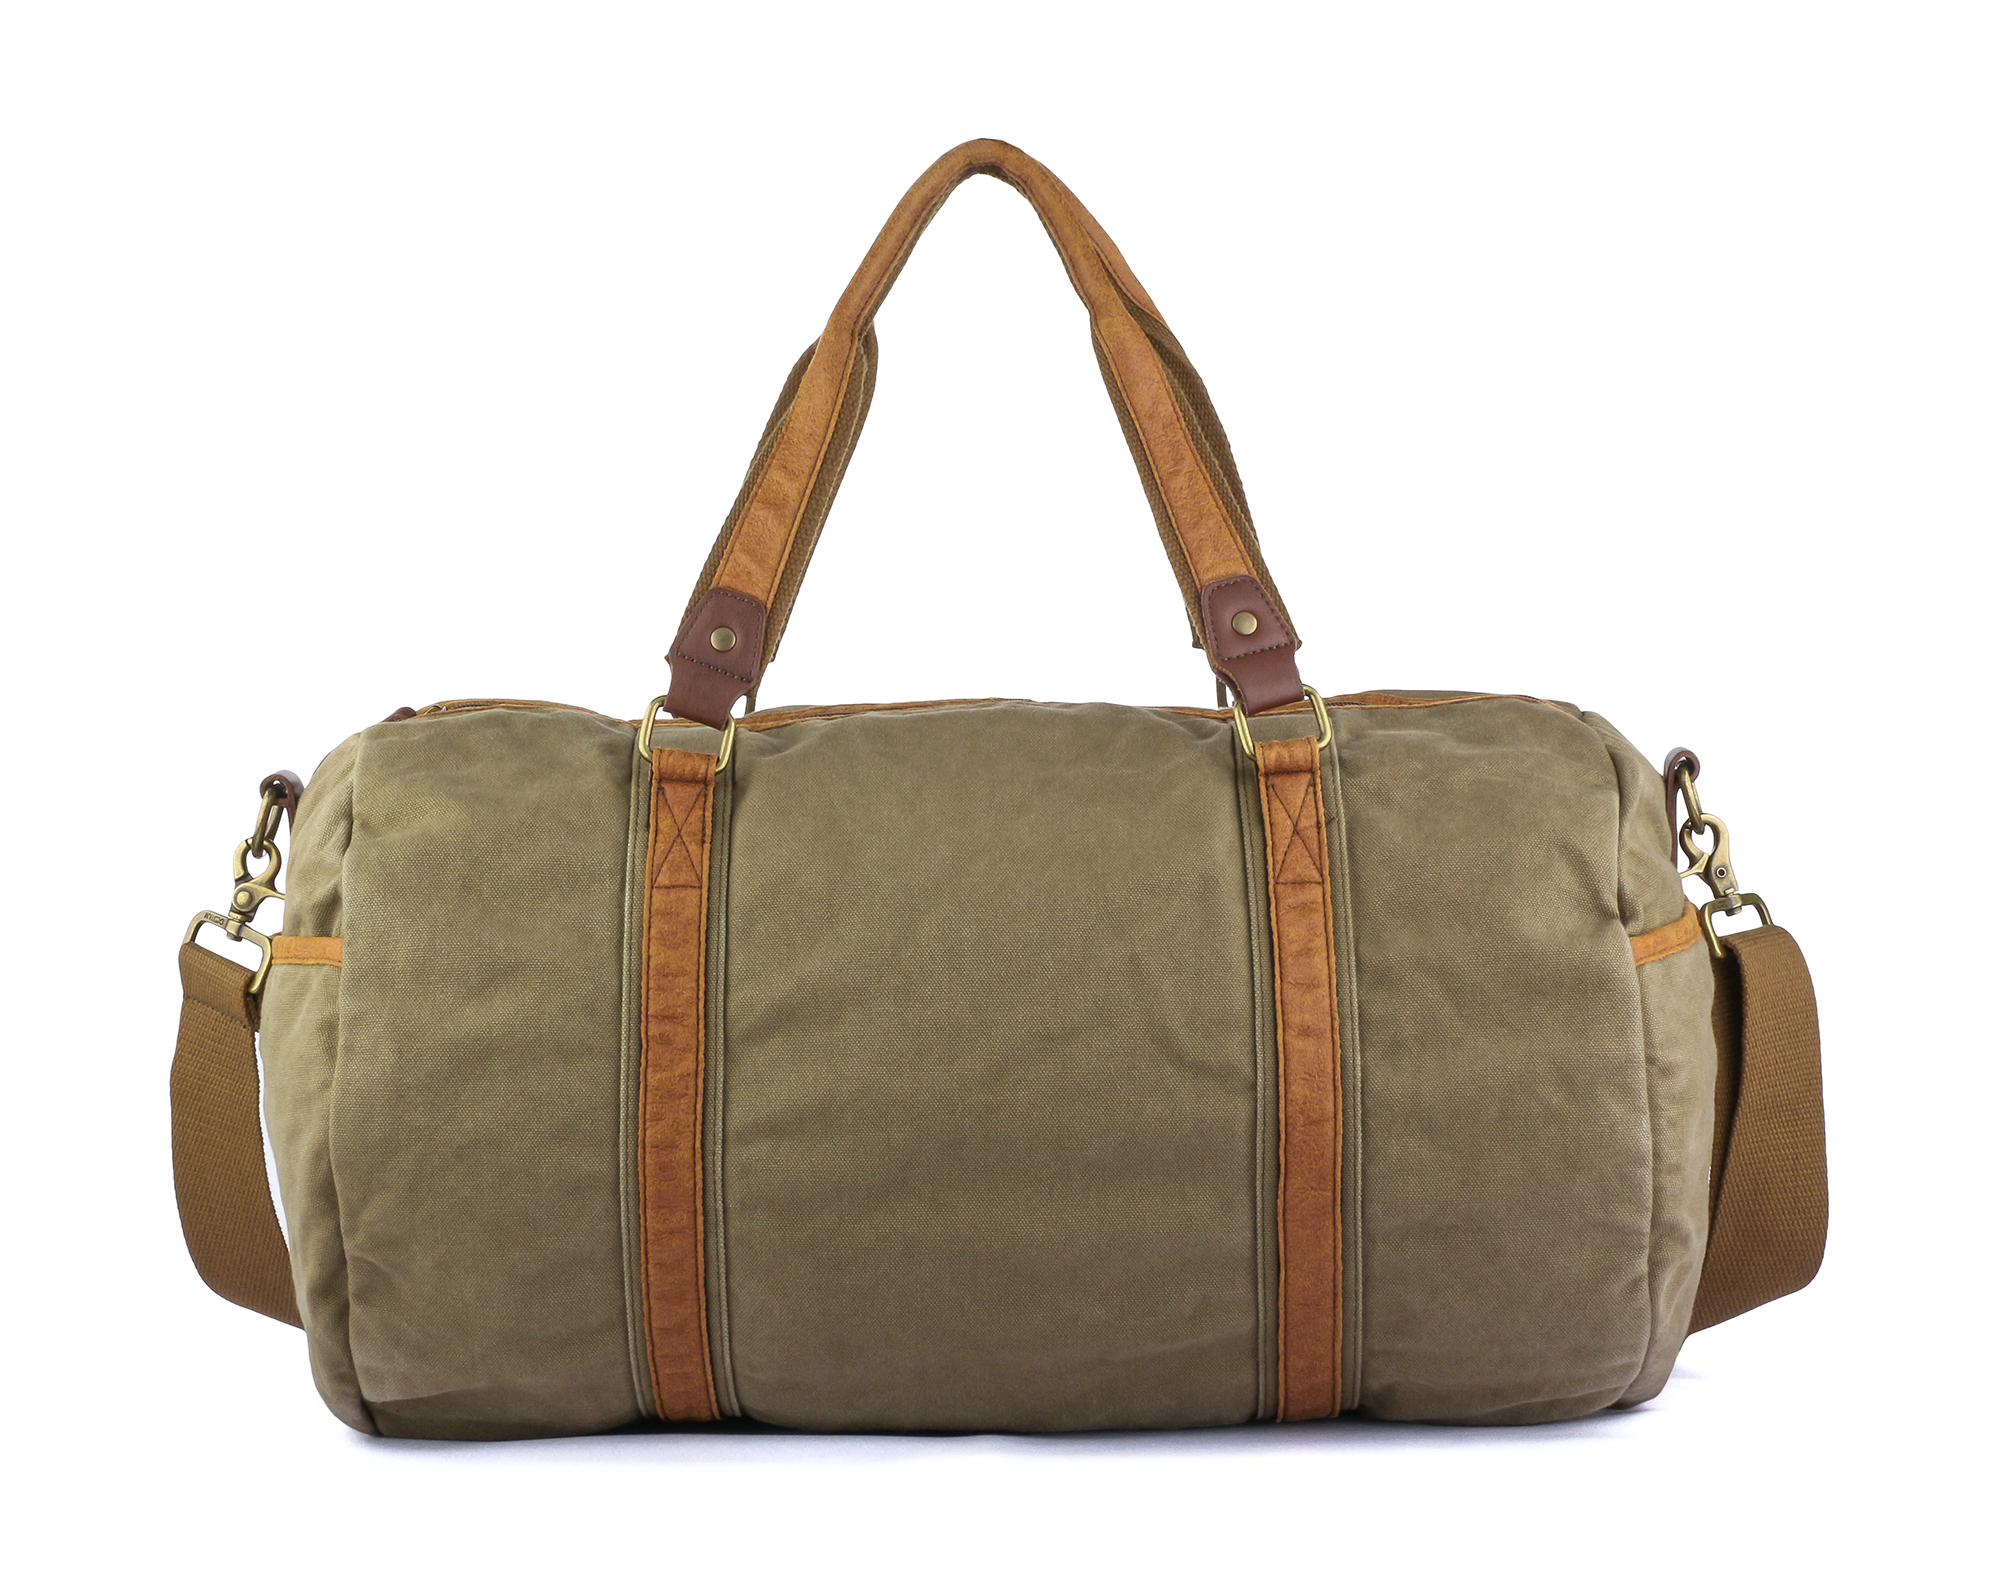 Gootium Vintage Canvas Duffle Bag Carry-on Weekender Sports Gym Bag, 28L,  Army Green ad87866bc2